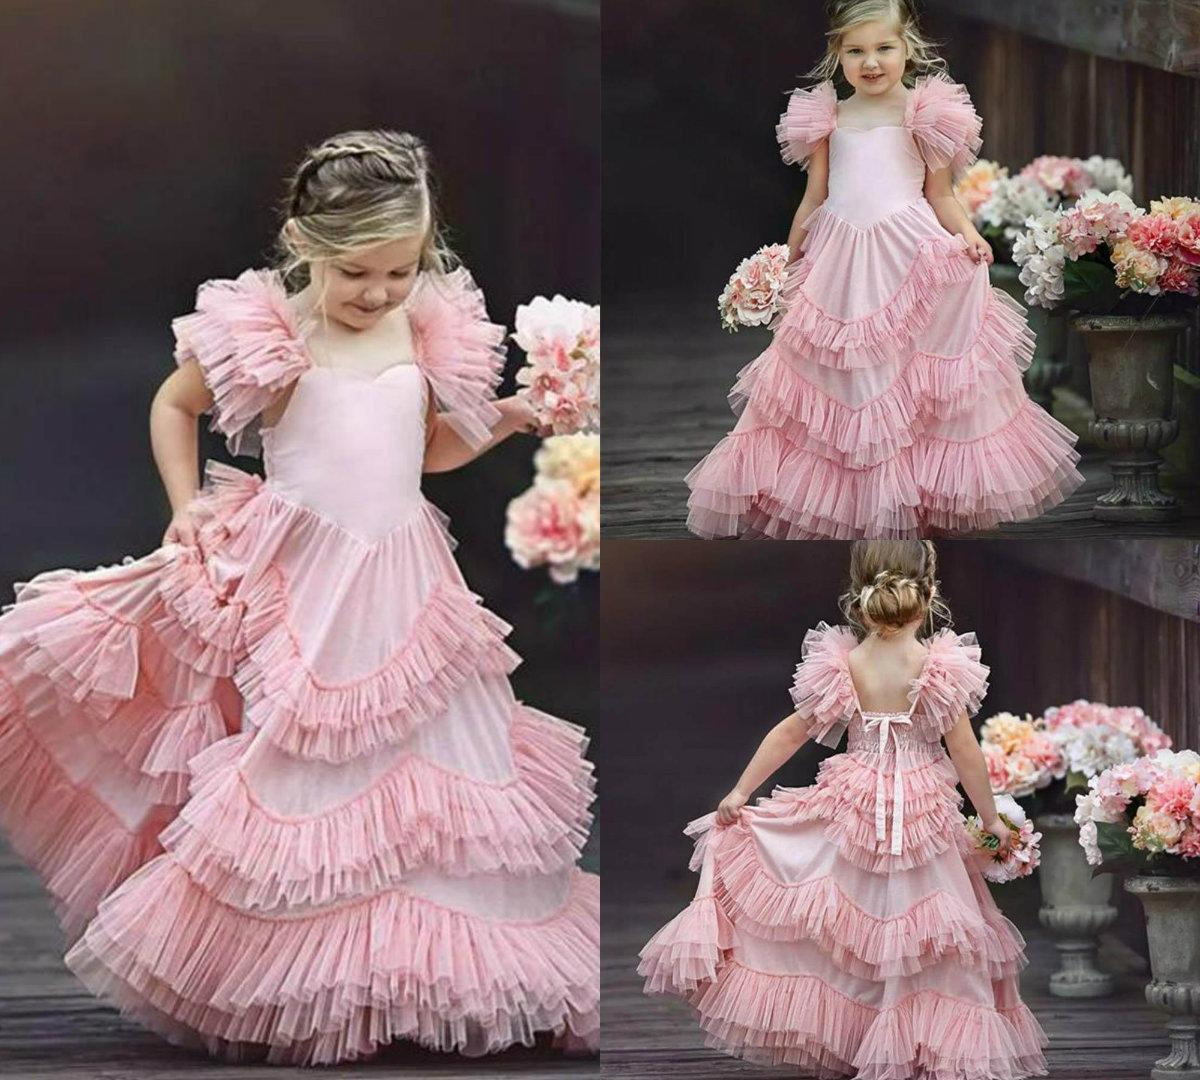 bb5ccaac09 New Blush Pink Flower Girl Dresses For Weddings Ruffle Cute Little Girls  Pageant Dress Spaghetti Strap Tulle First Holy Communion Dresses Color  Flower Girl ...